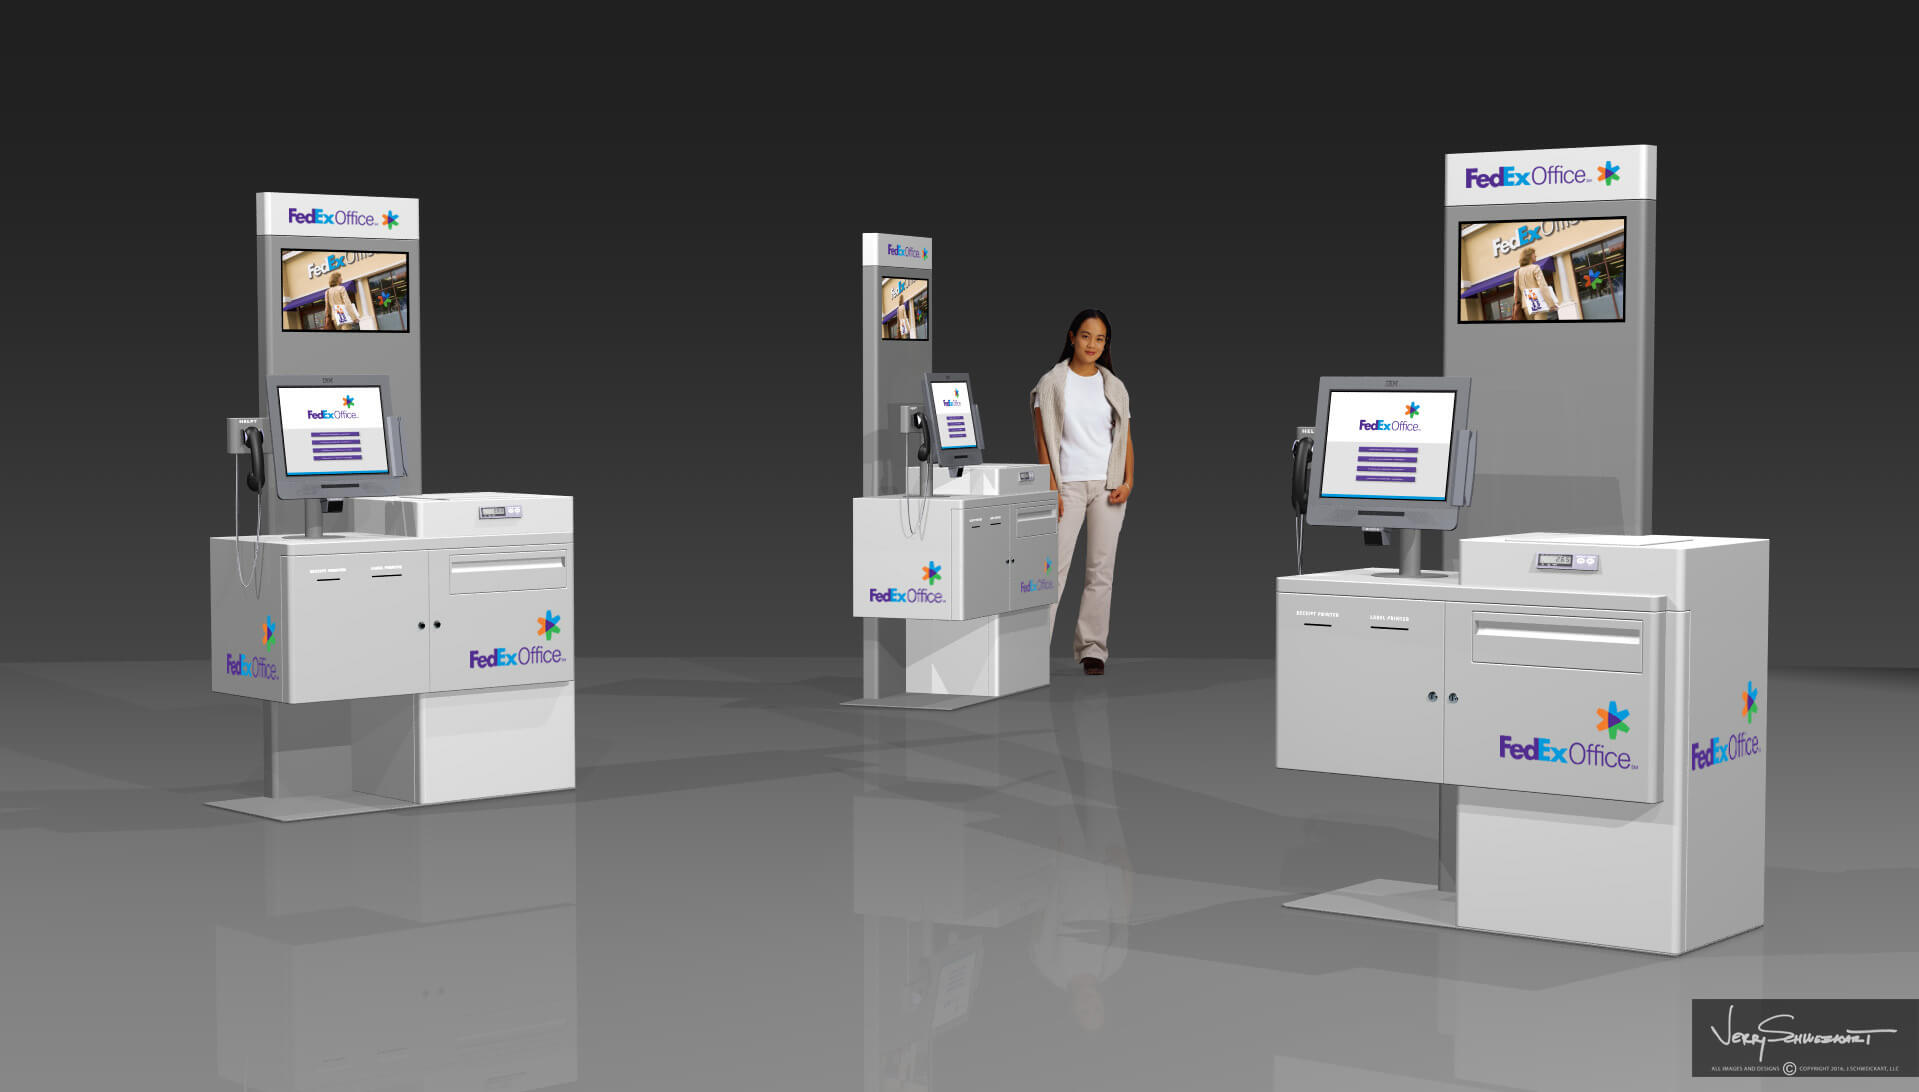 FedEx Shipping Kiosk Designed by Industrial Designer Jer Schweickart